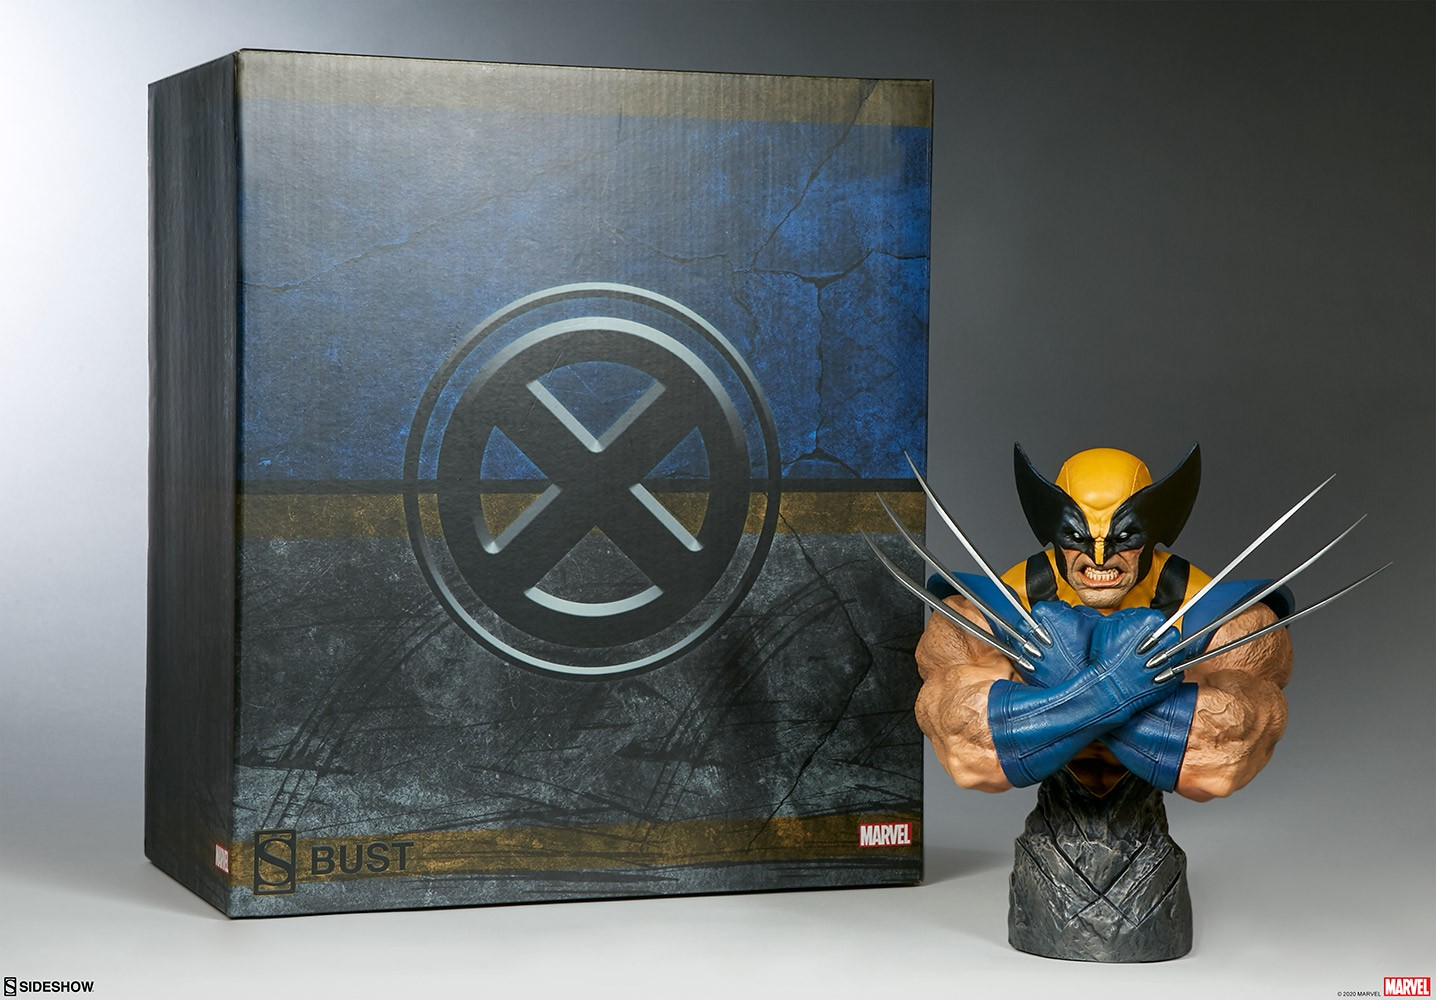 Sideshow Wolverine Bust 1/4 scale  - Movie Freaks Collectibles